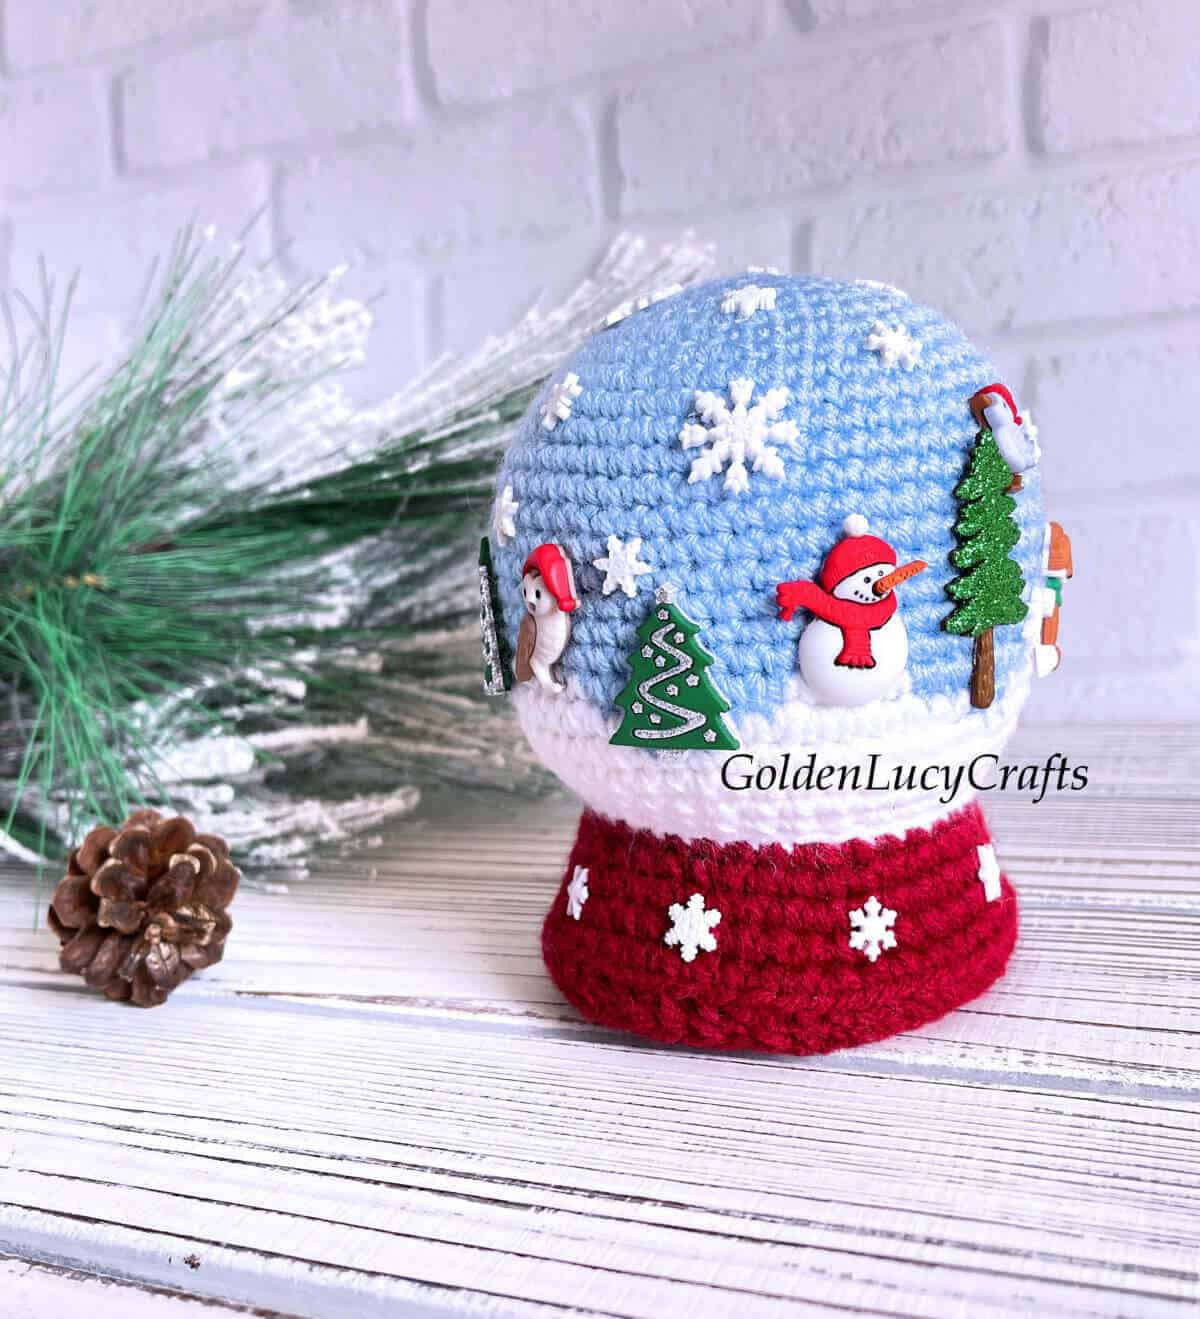 Crochet snow globe toy embellished with snowflakes, Christmas trees, snowmen and animals buttons.